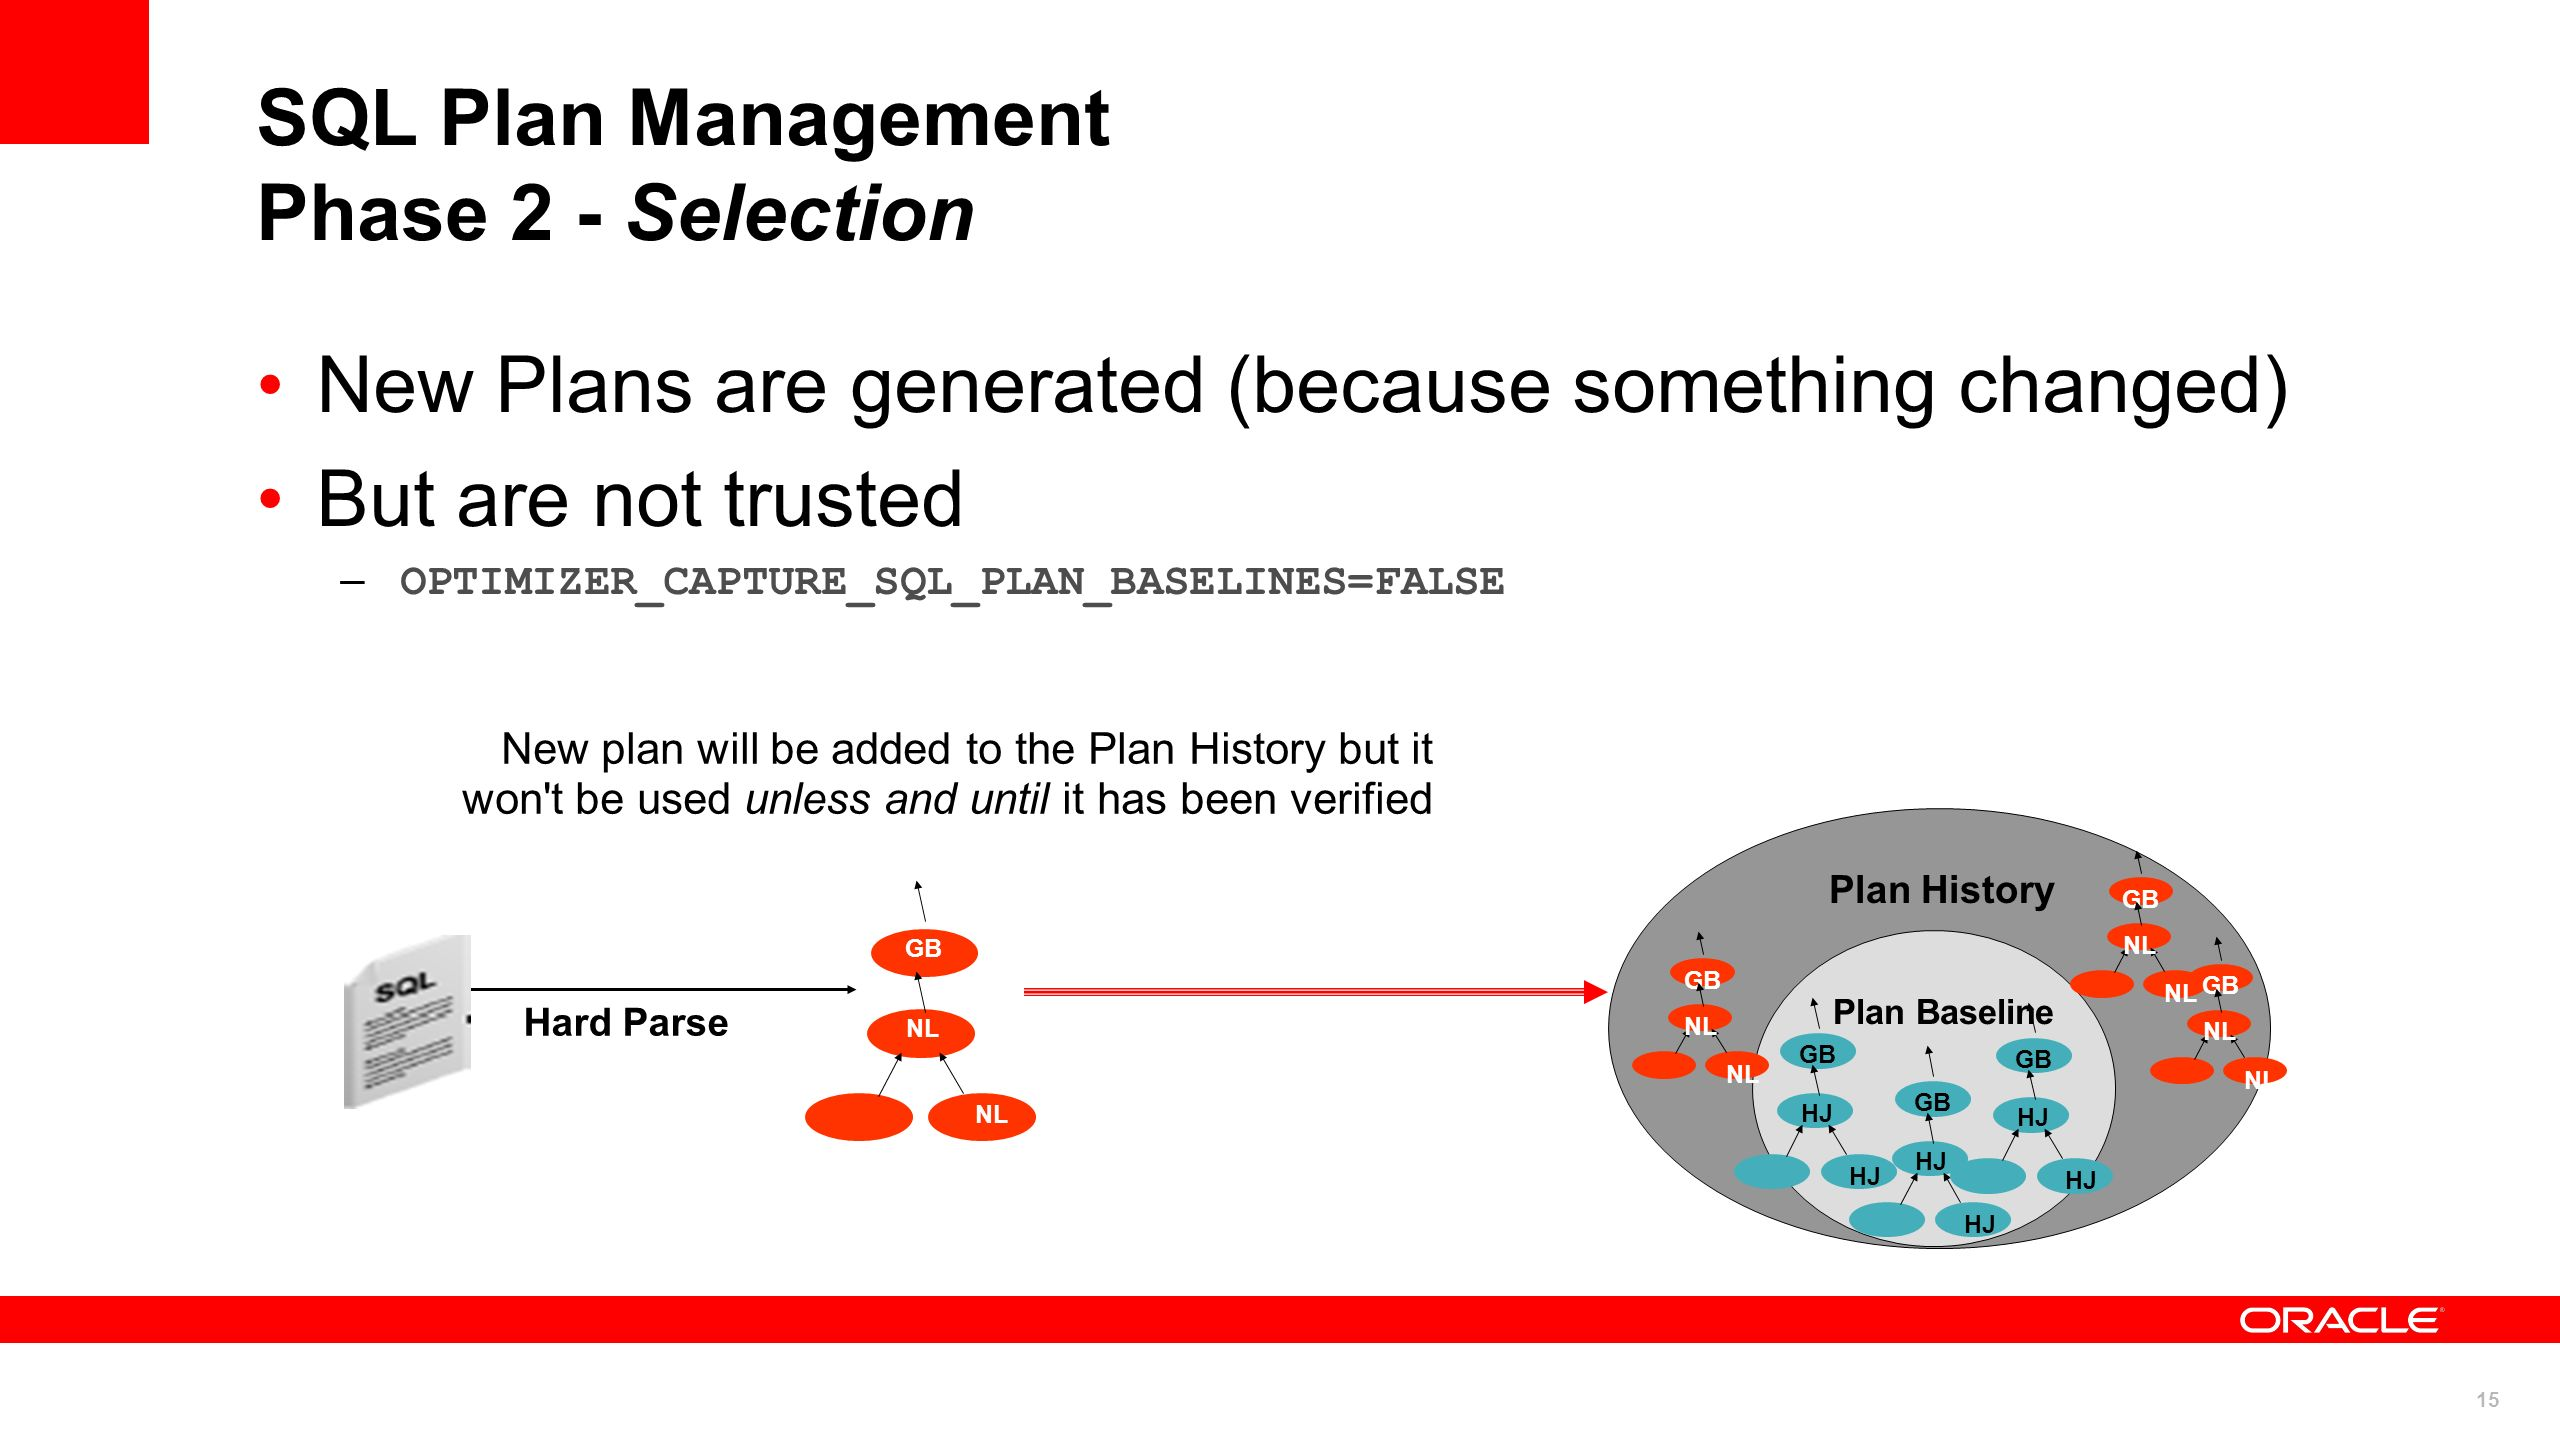 SQL Plan Management Phase 2 - Selection